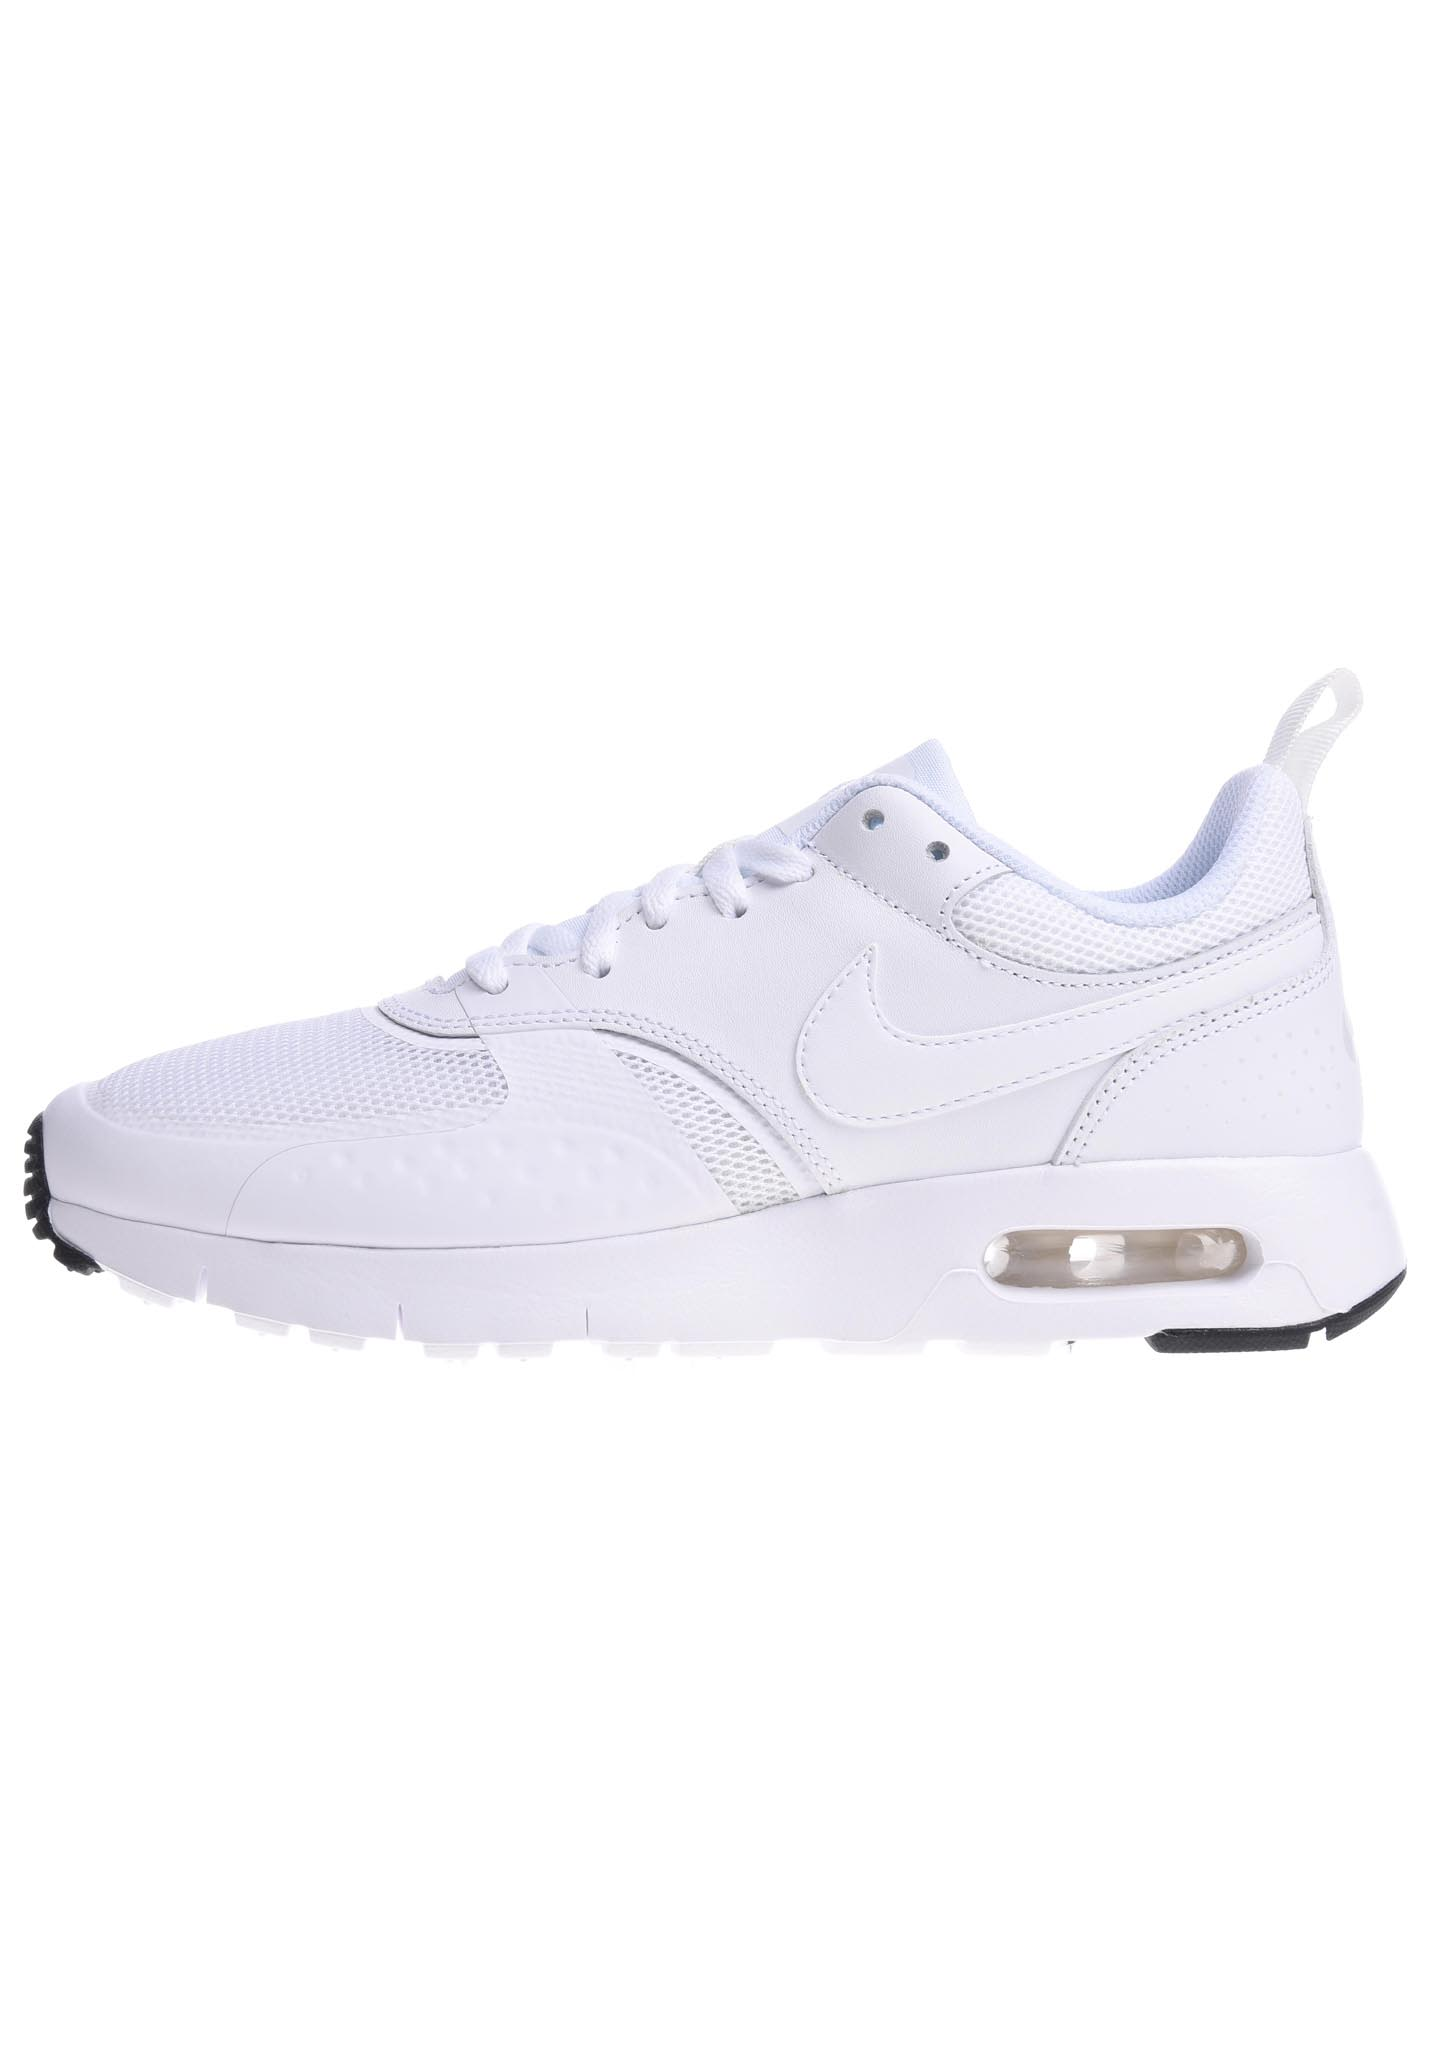 NIKE SPORTSWEAR Air Max Vision - Sneakers for Kids Boys - White - Planet  Sports db074931c299